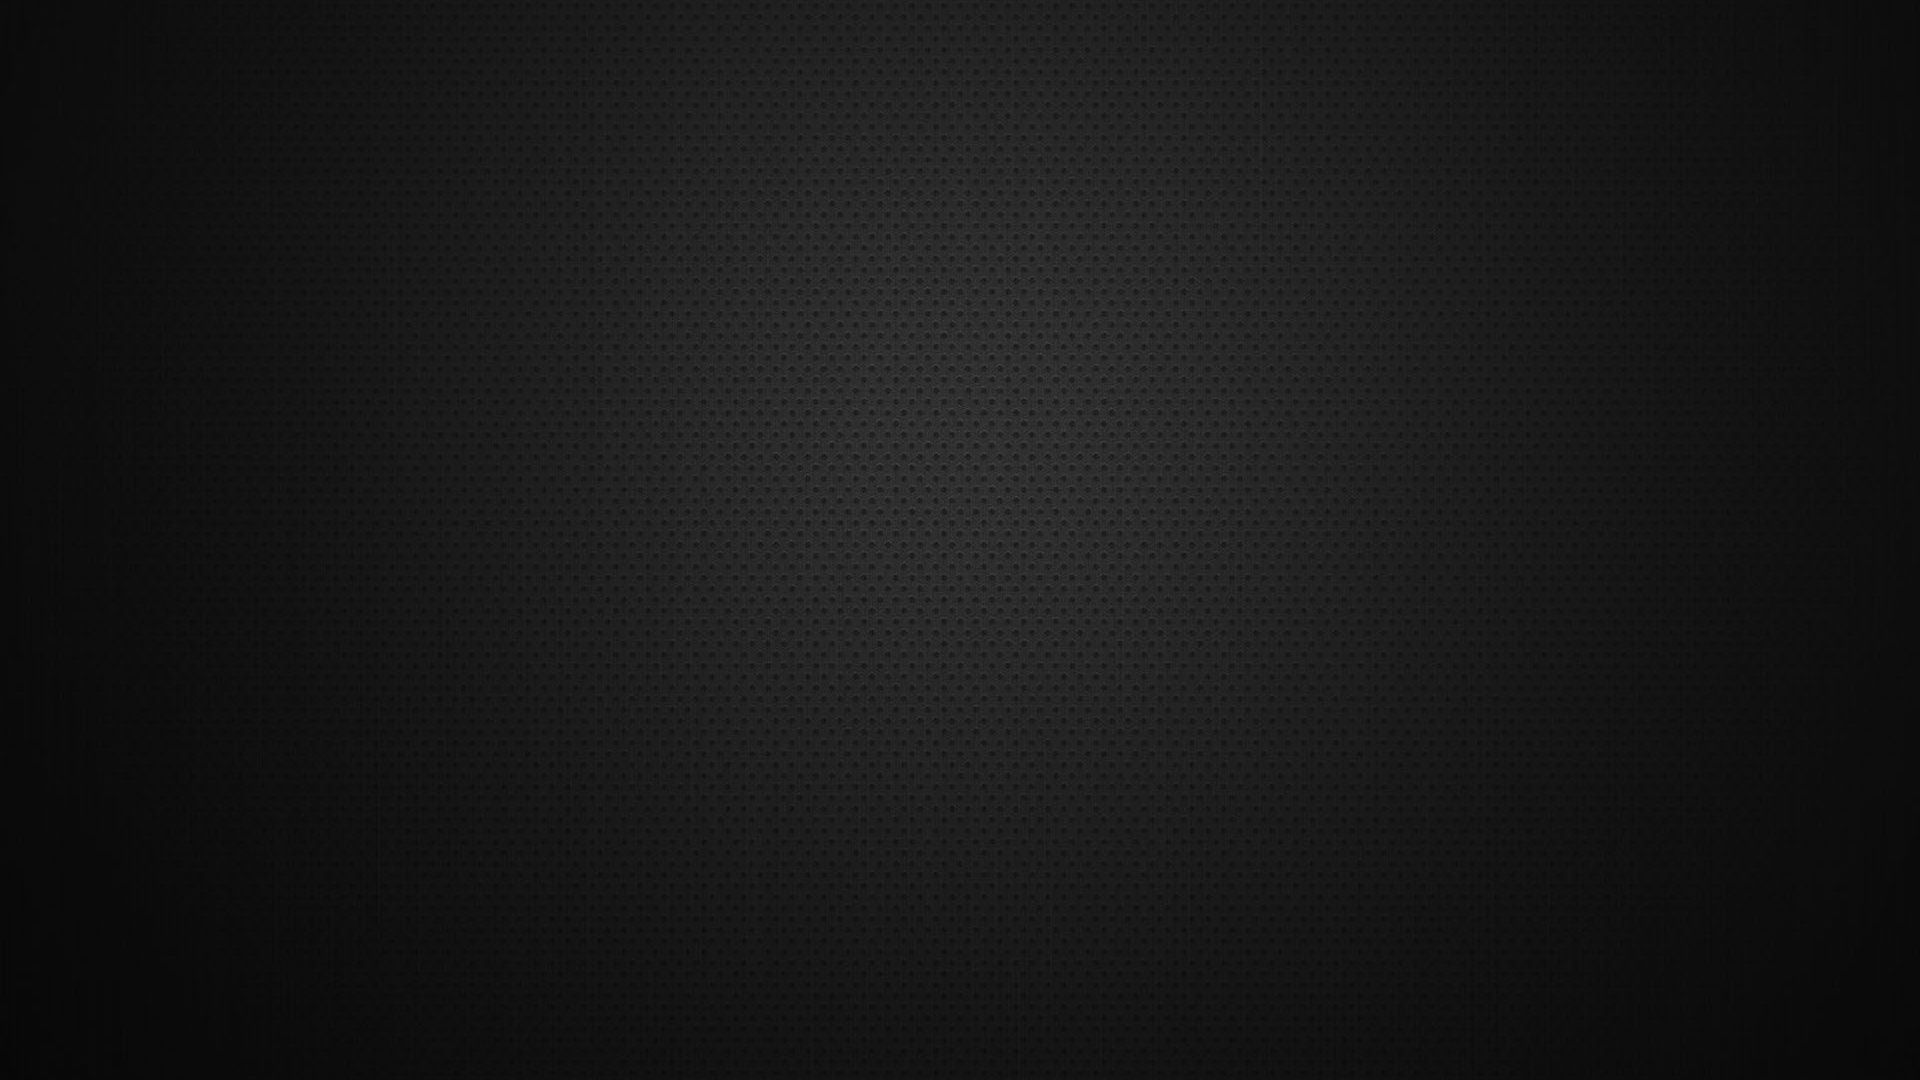 Plain Black picture wallpaper